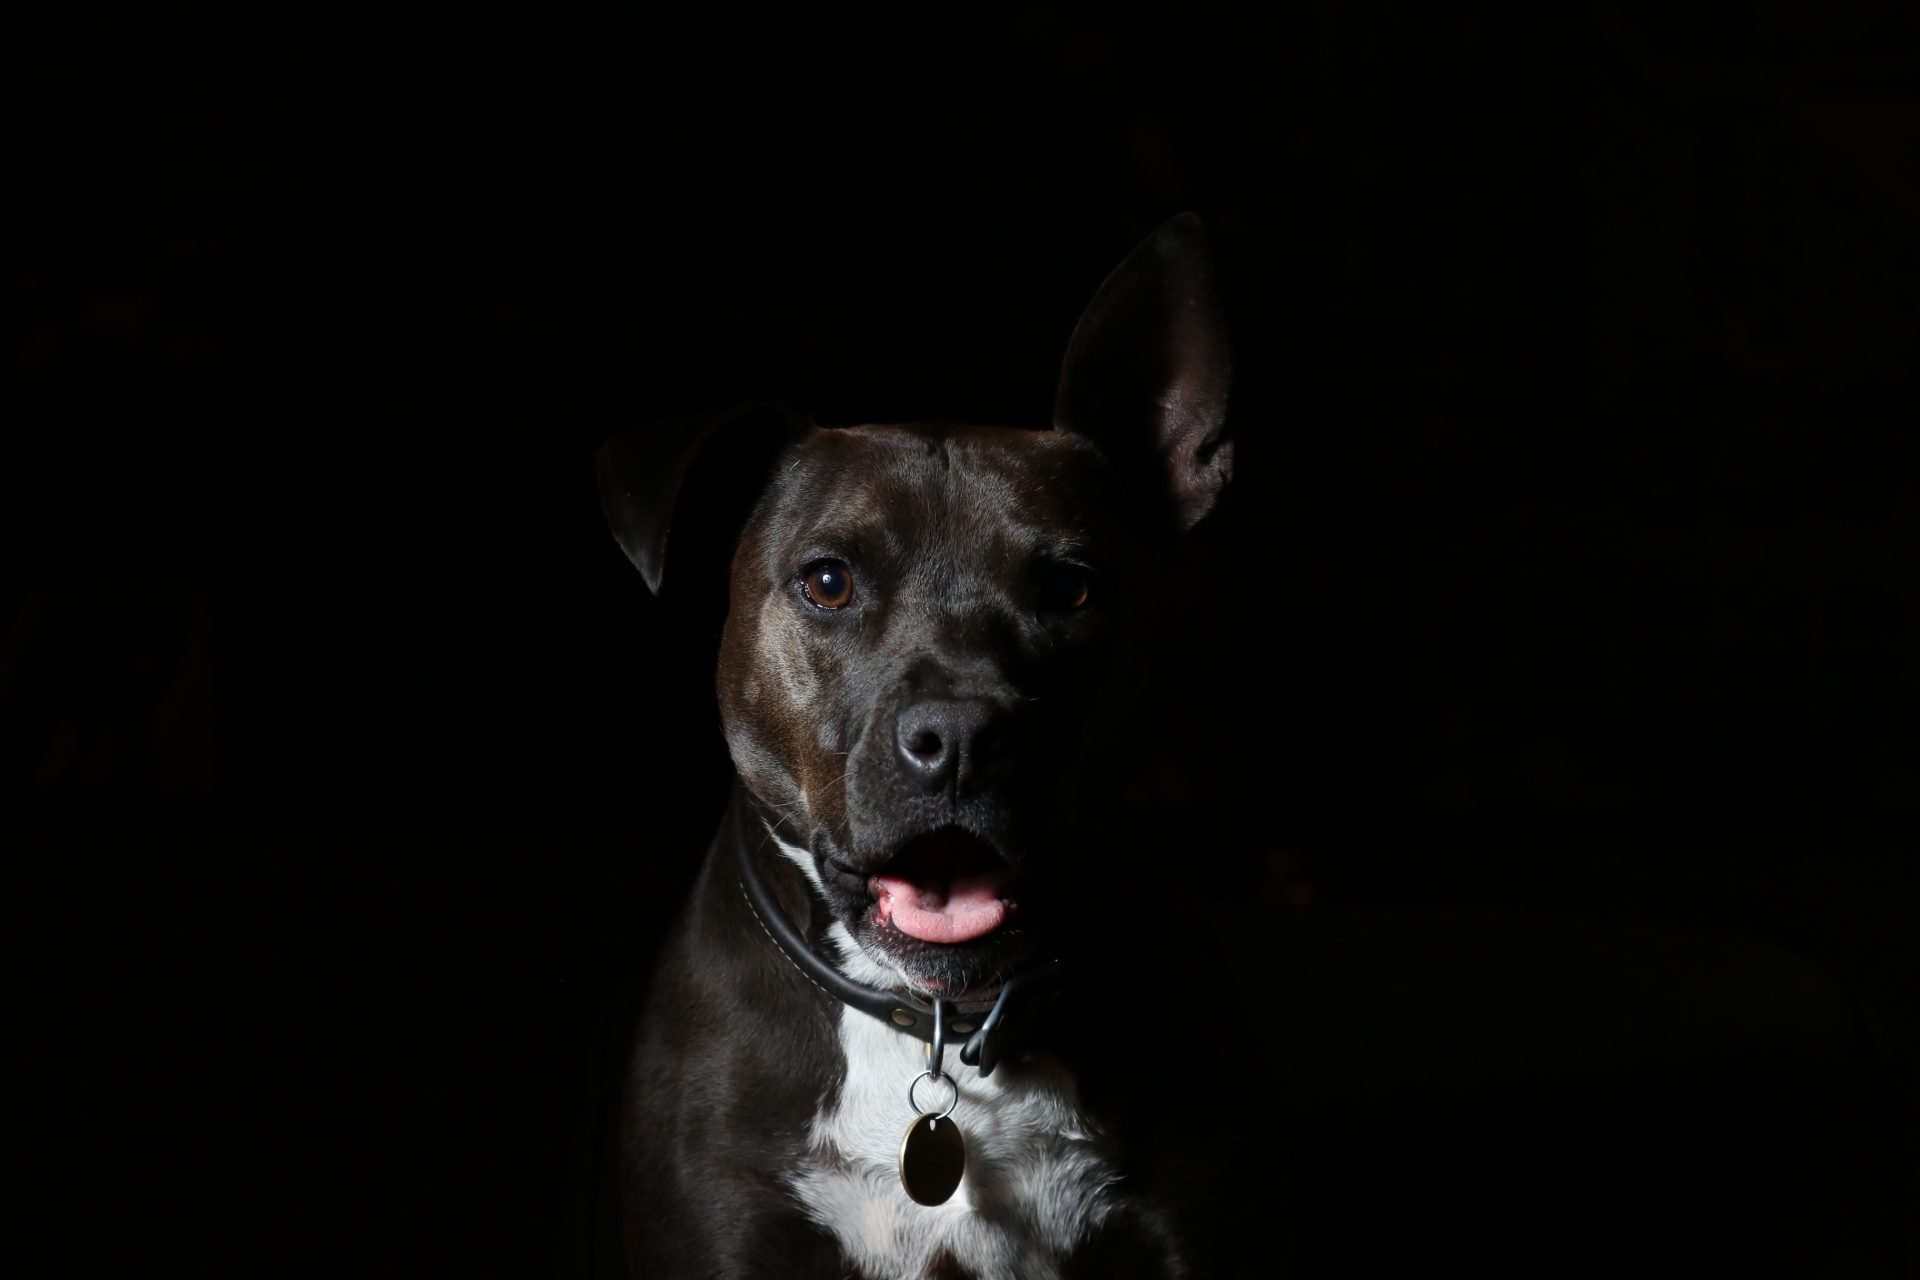 Pit bull in the shadows